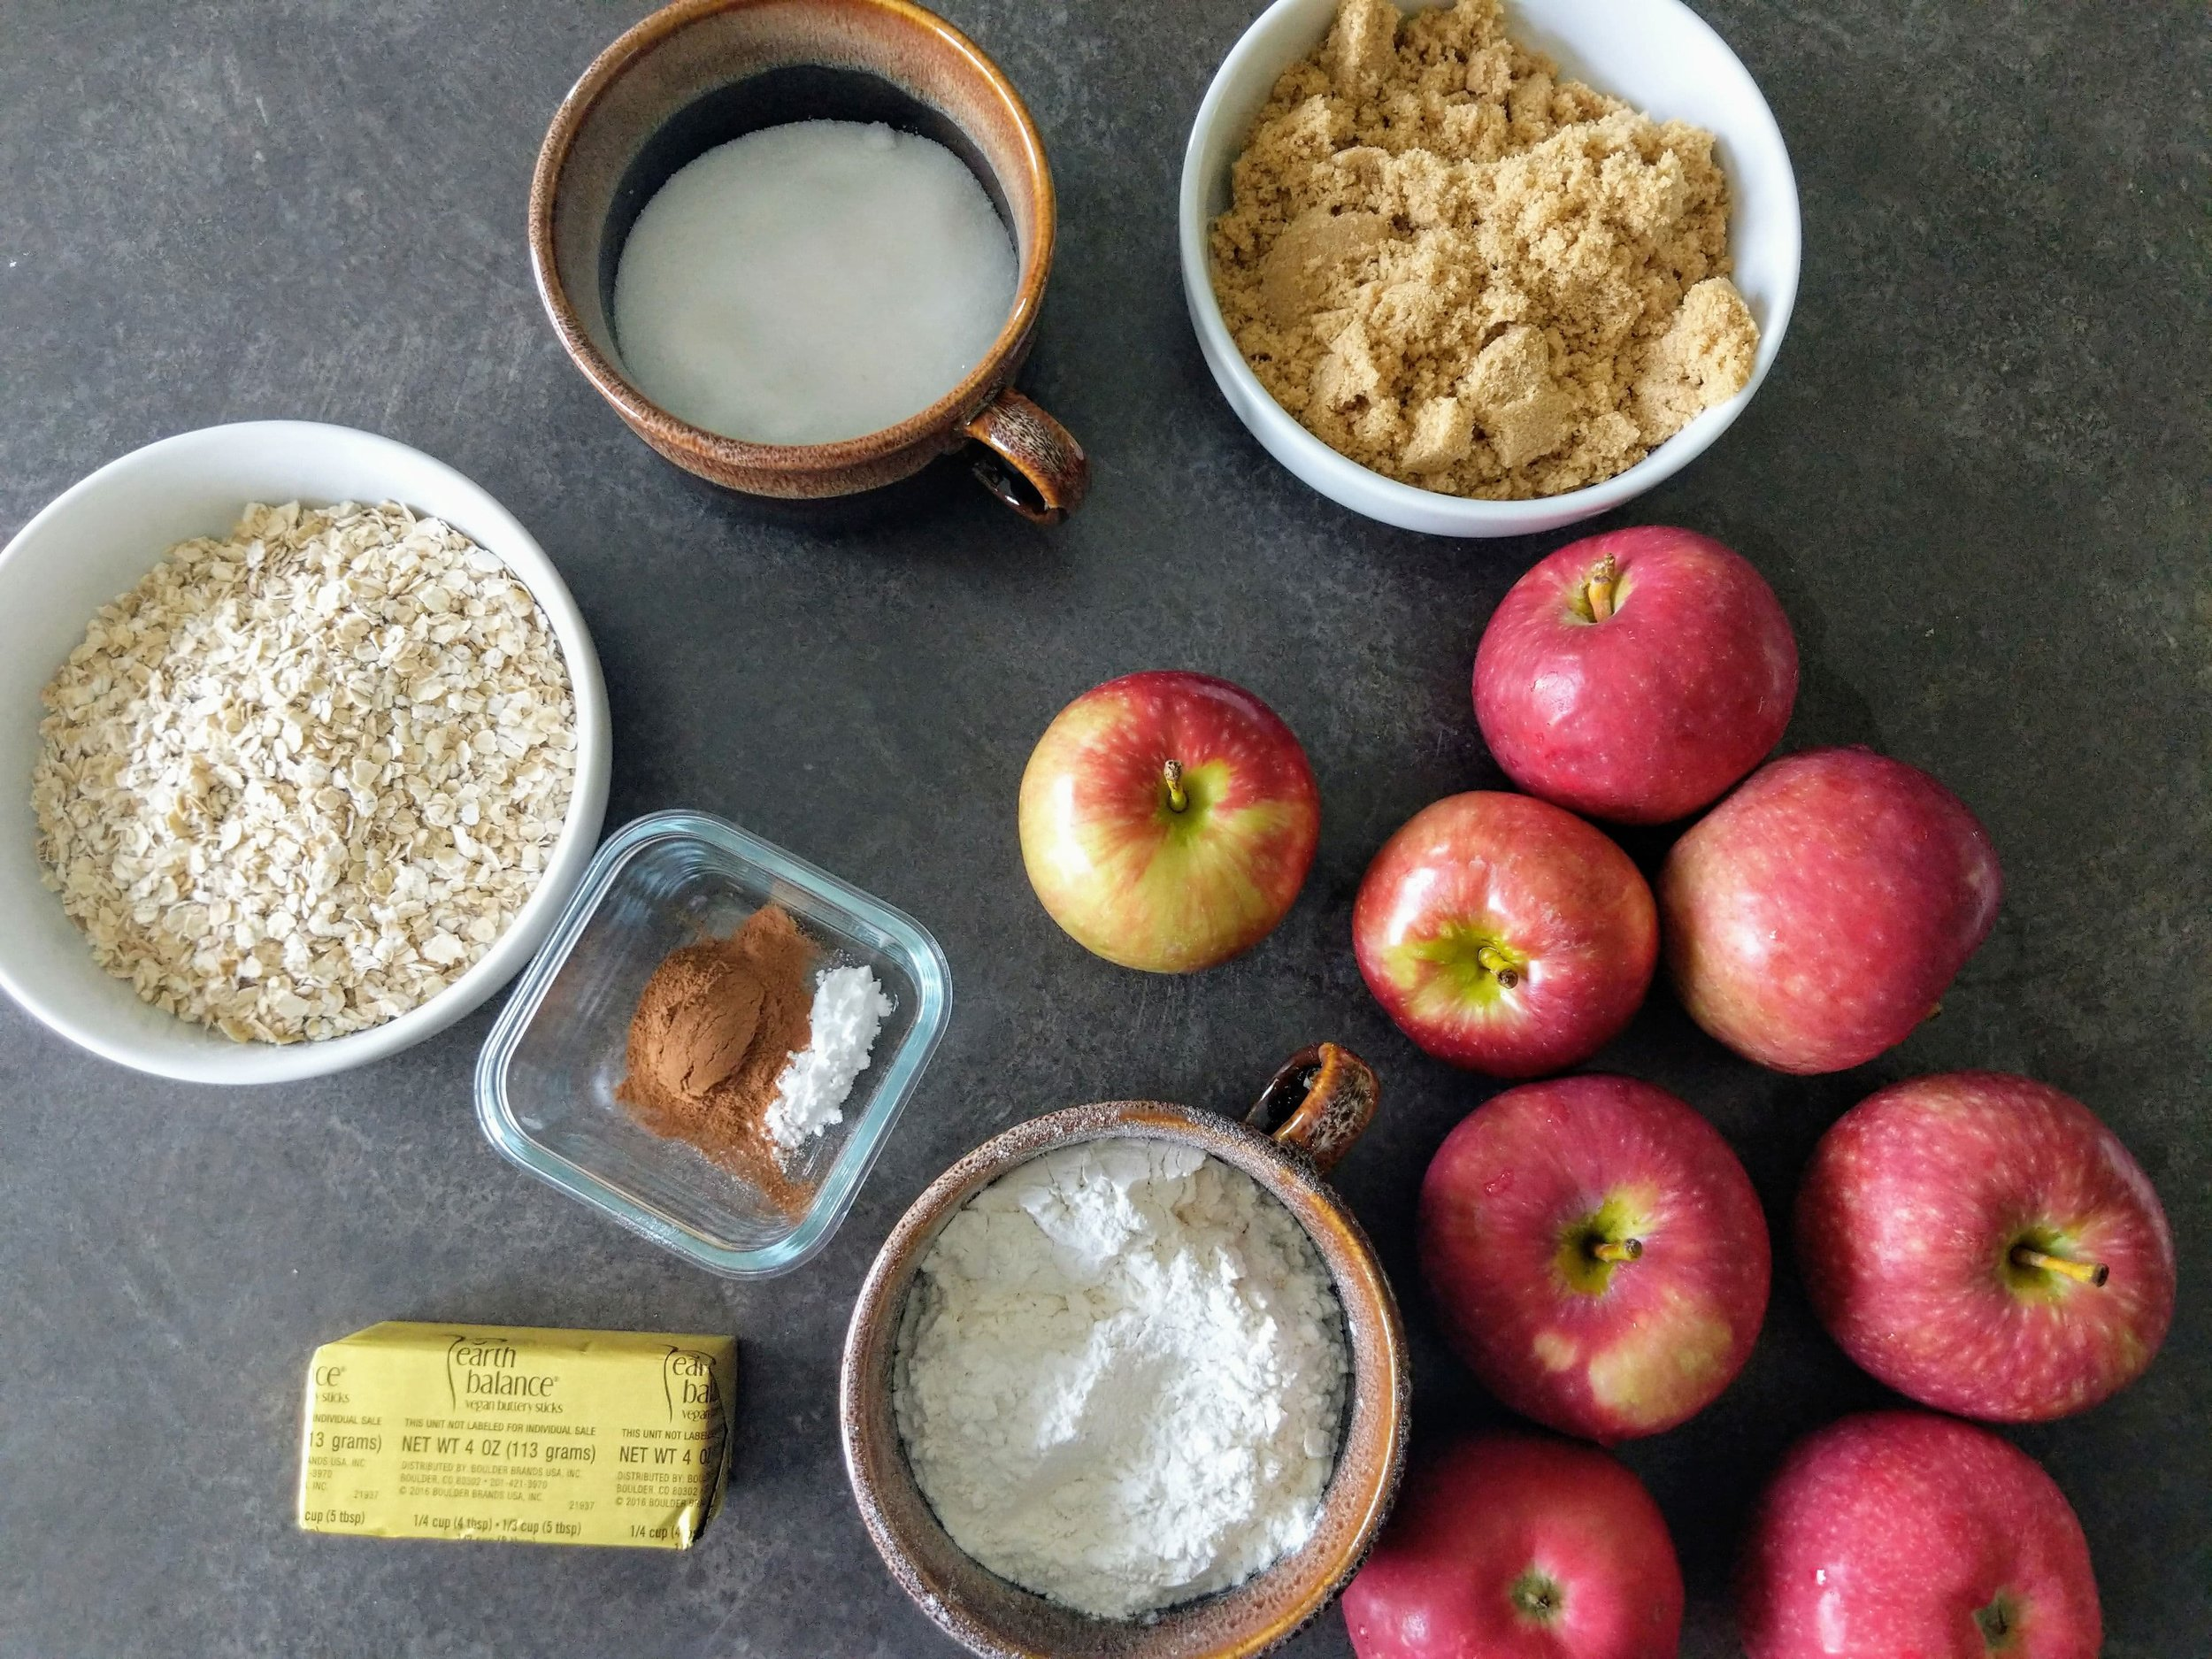 Ingredients for vegan apple crisp